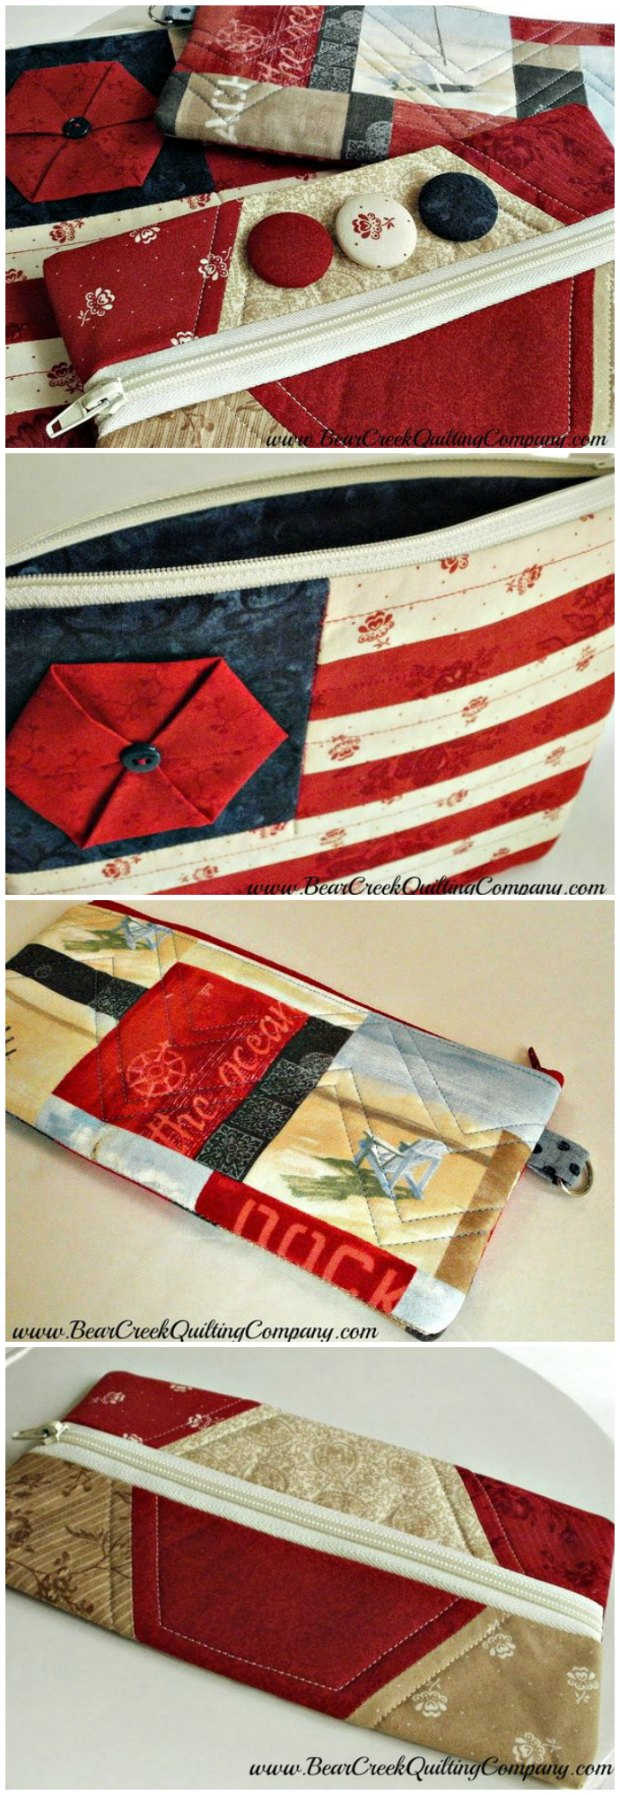 Free tutorial for 3 different zipper bags to sew.  I really like the one that looks like a flag, but each of them is interesting.  I know someone who would love that hexies one too.